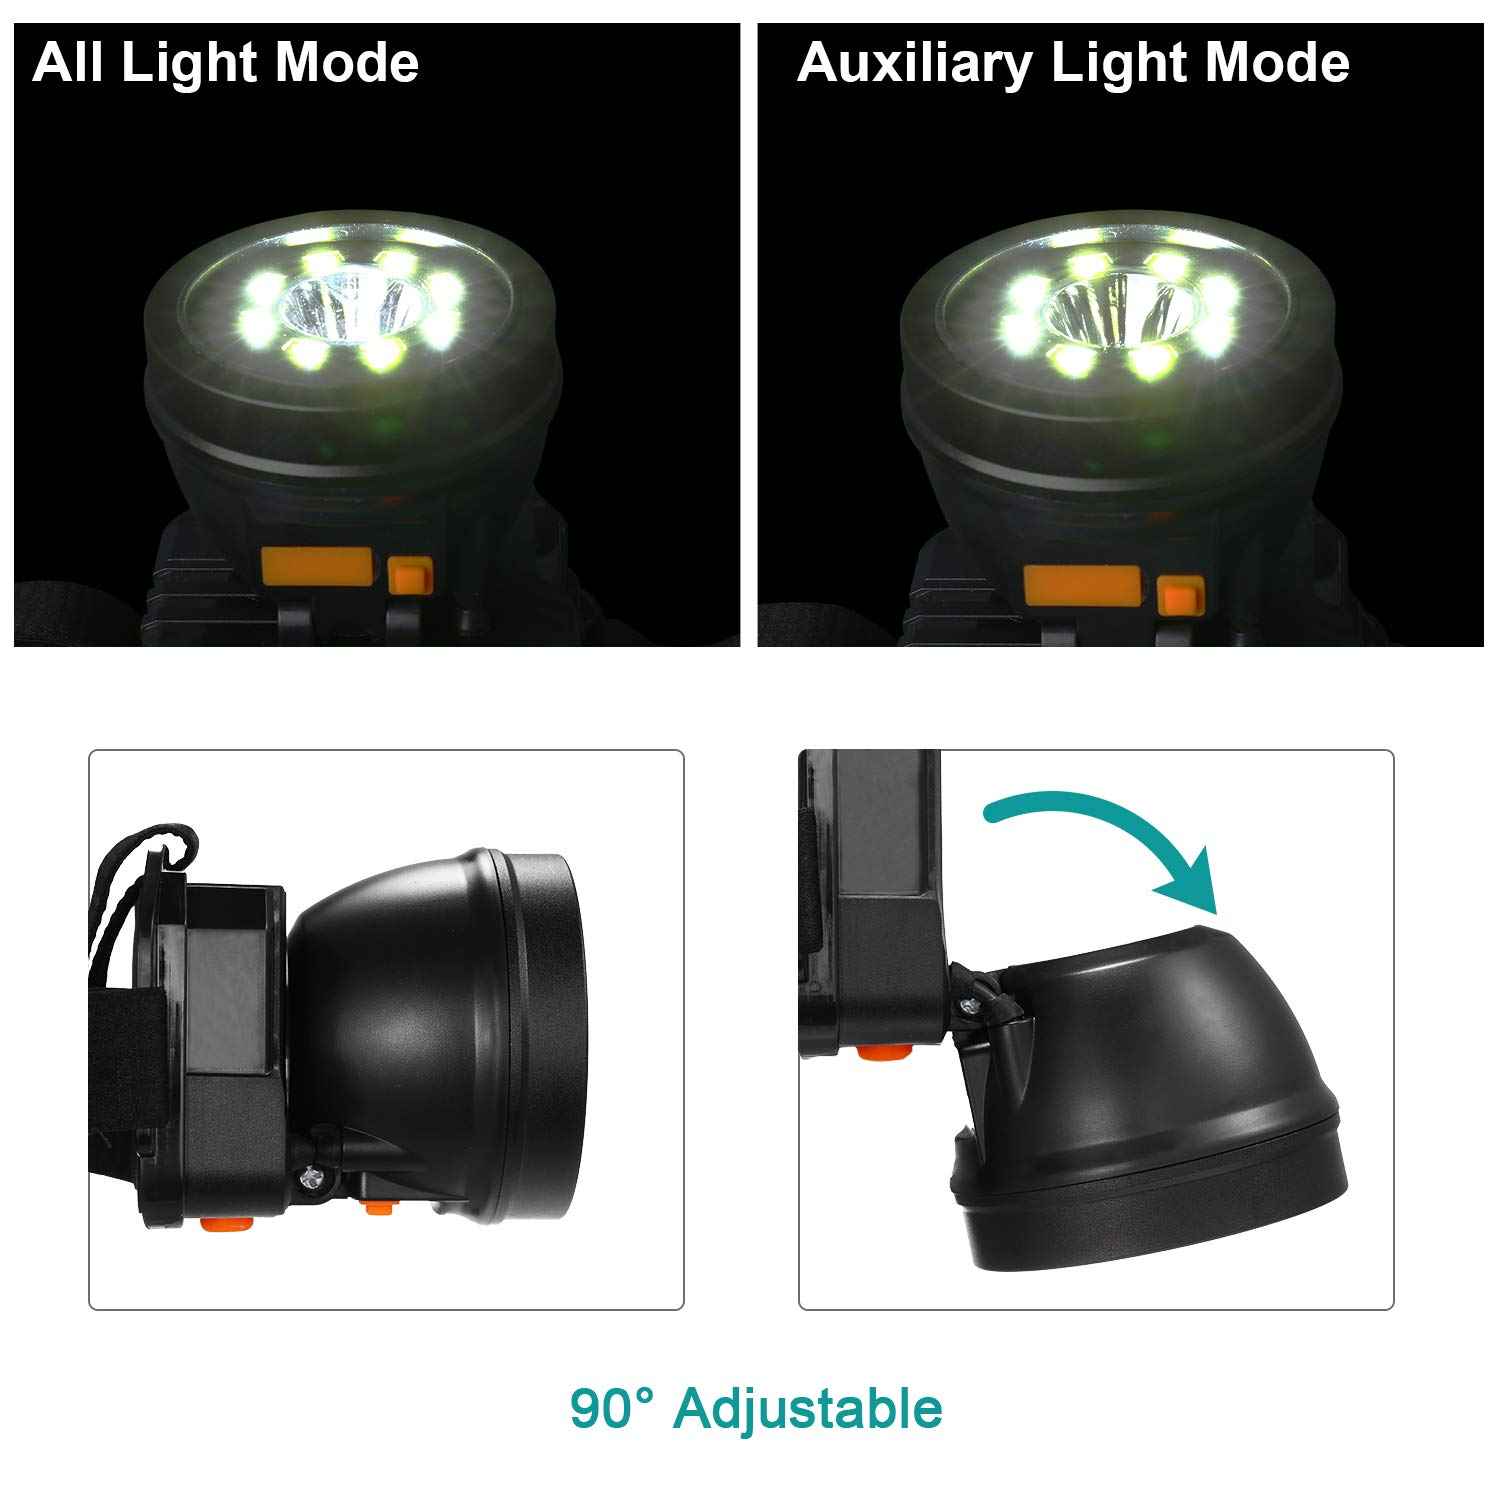 Wearable Headlamp Camera 32GB Memory Card Included Small Camera LED Work Headlight,2 Modes Adjustment USB Rechargeable Waterproof Flashlight with Zoomable Work Light,Head Lights for Camping,Hiking